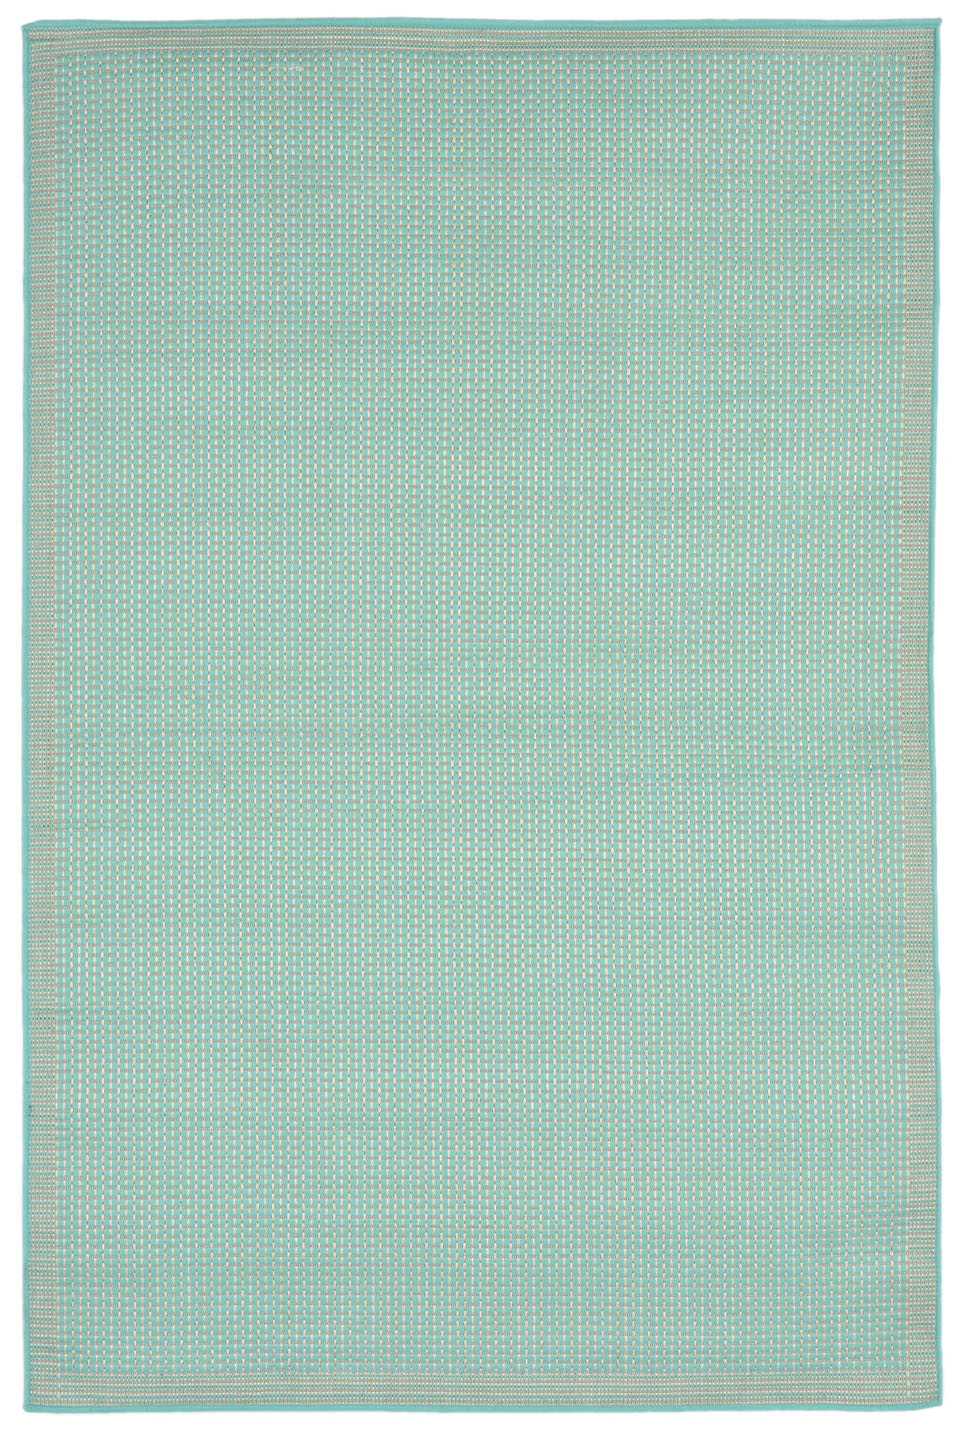 Transocean Terrace 1762/93 Texture Turquoise Rug